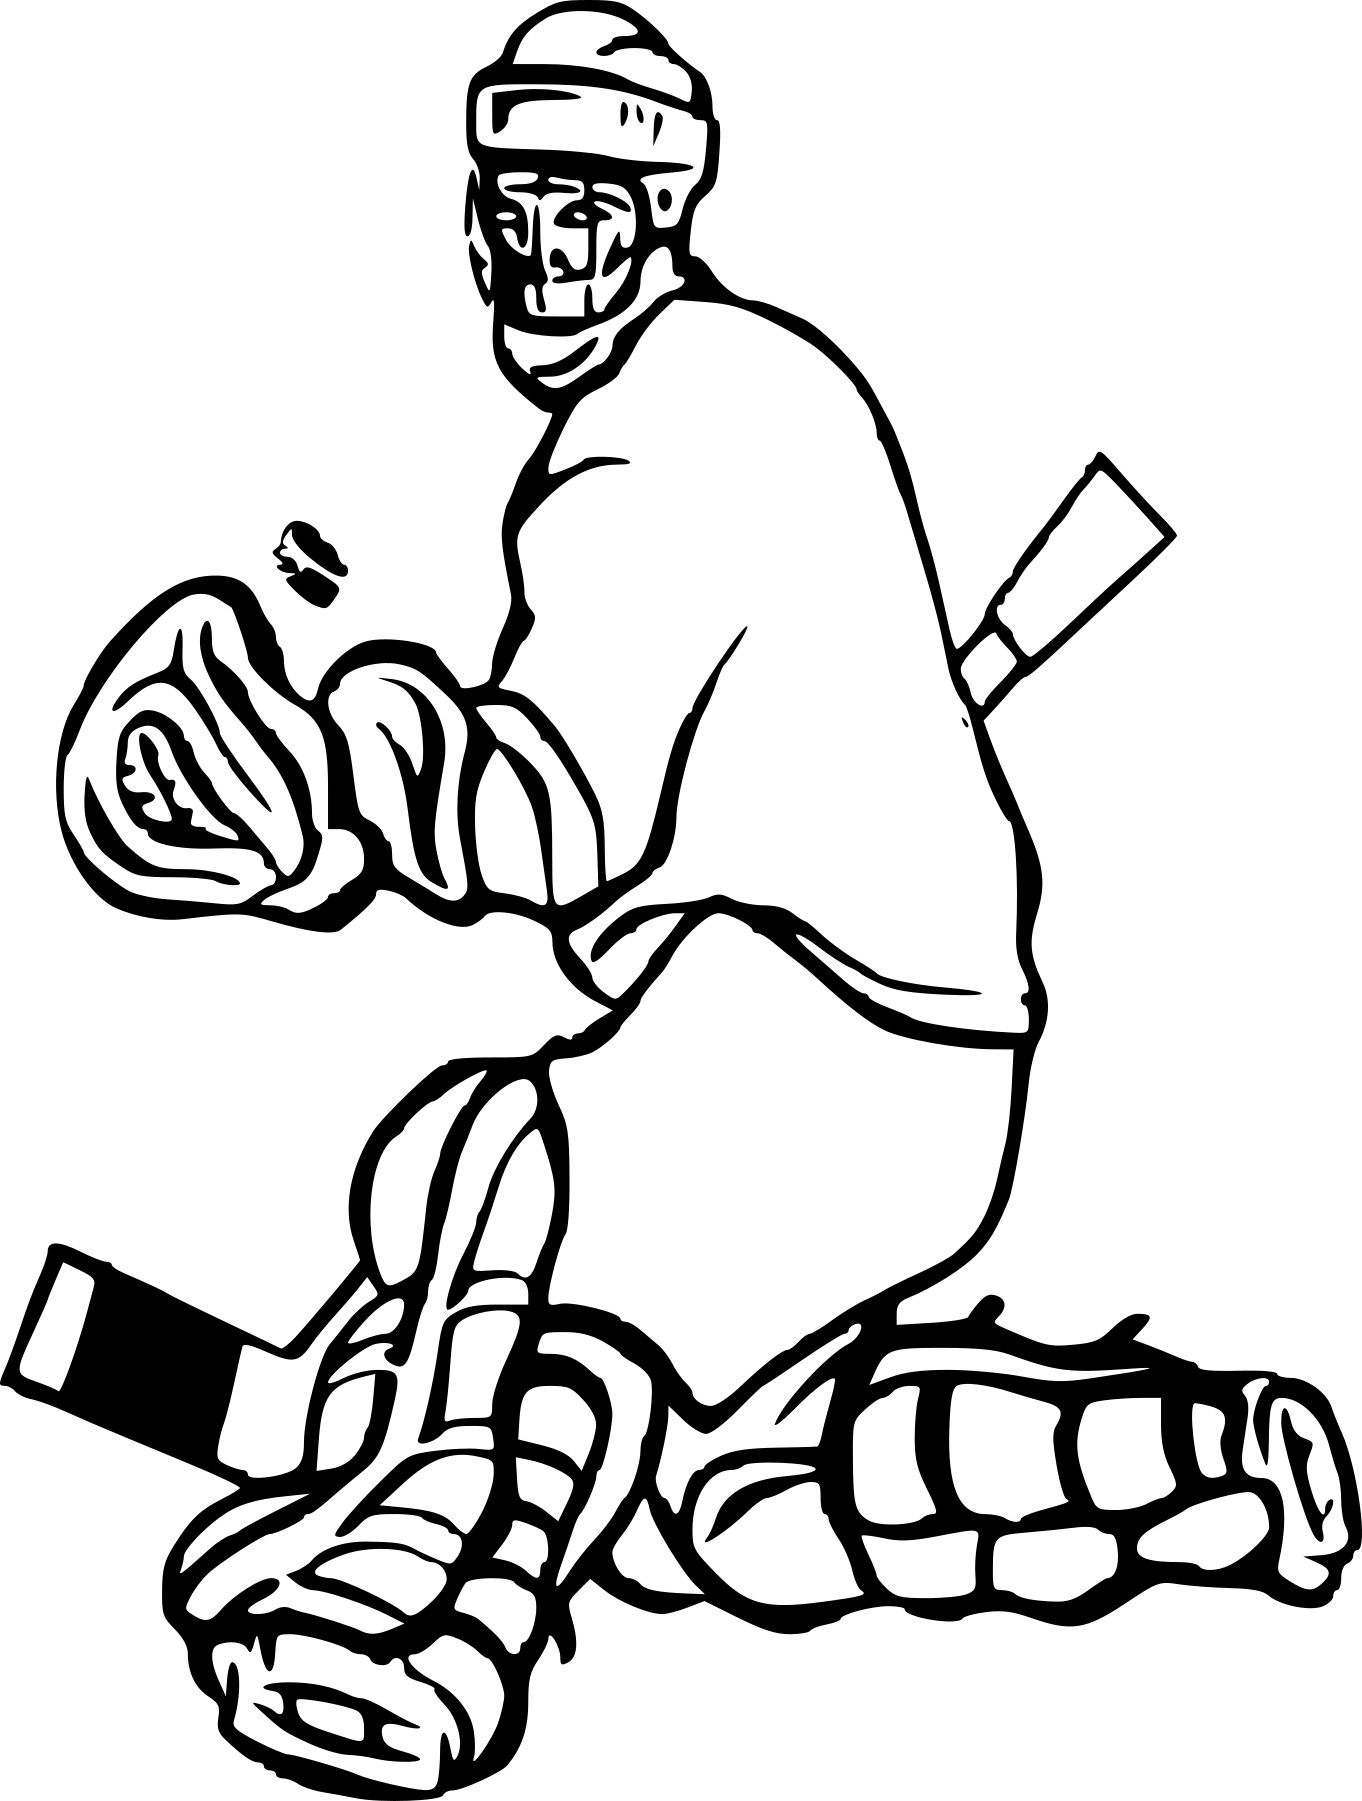 Coloriage gardien de hockey